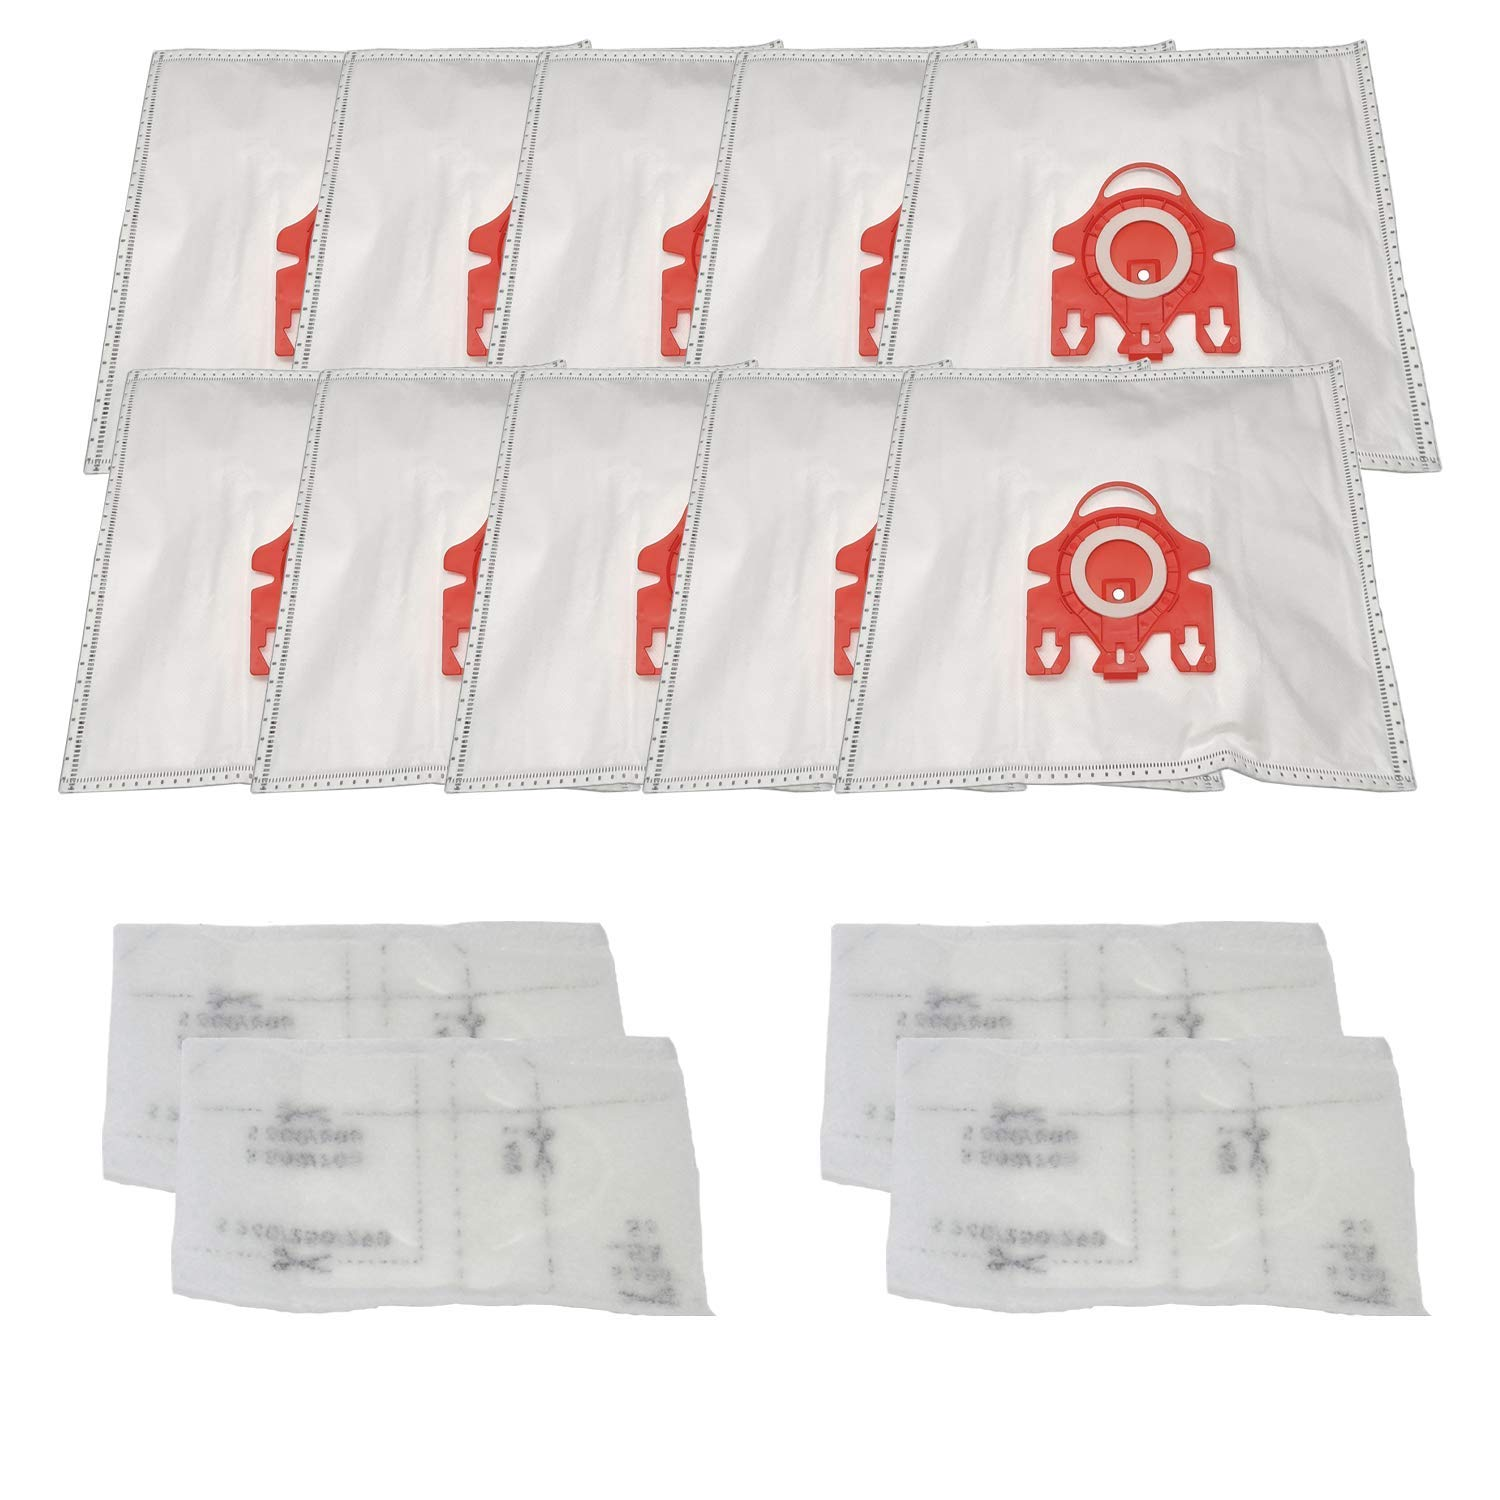 EAS Compatible Vacuum Bags/Filters(10 Bags + 4 Filters) for Miele FJM Airclean Vacuum Bag. Replaces Part 7291640.Fits S241 S25|Vacuum Cleaner Parts| |  -